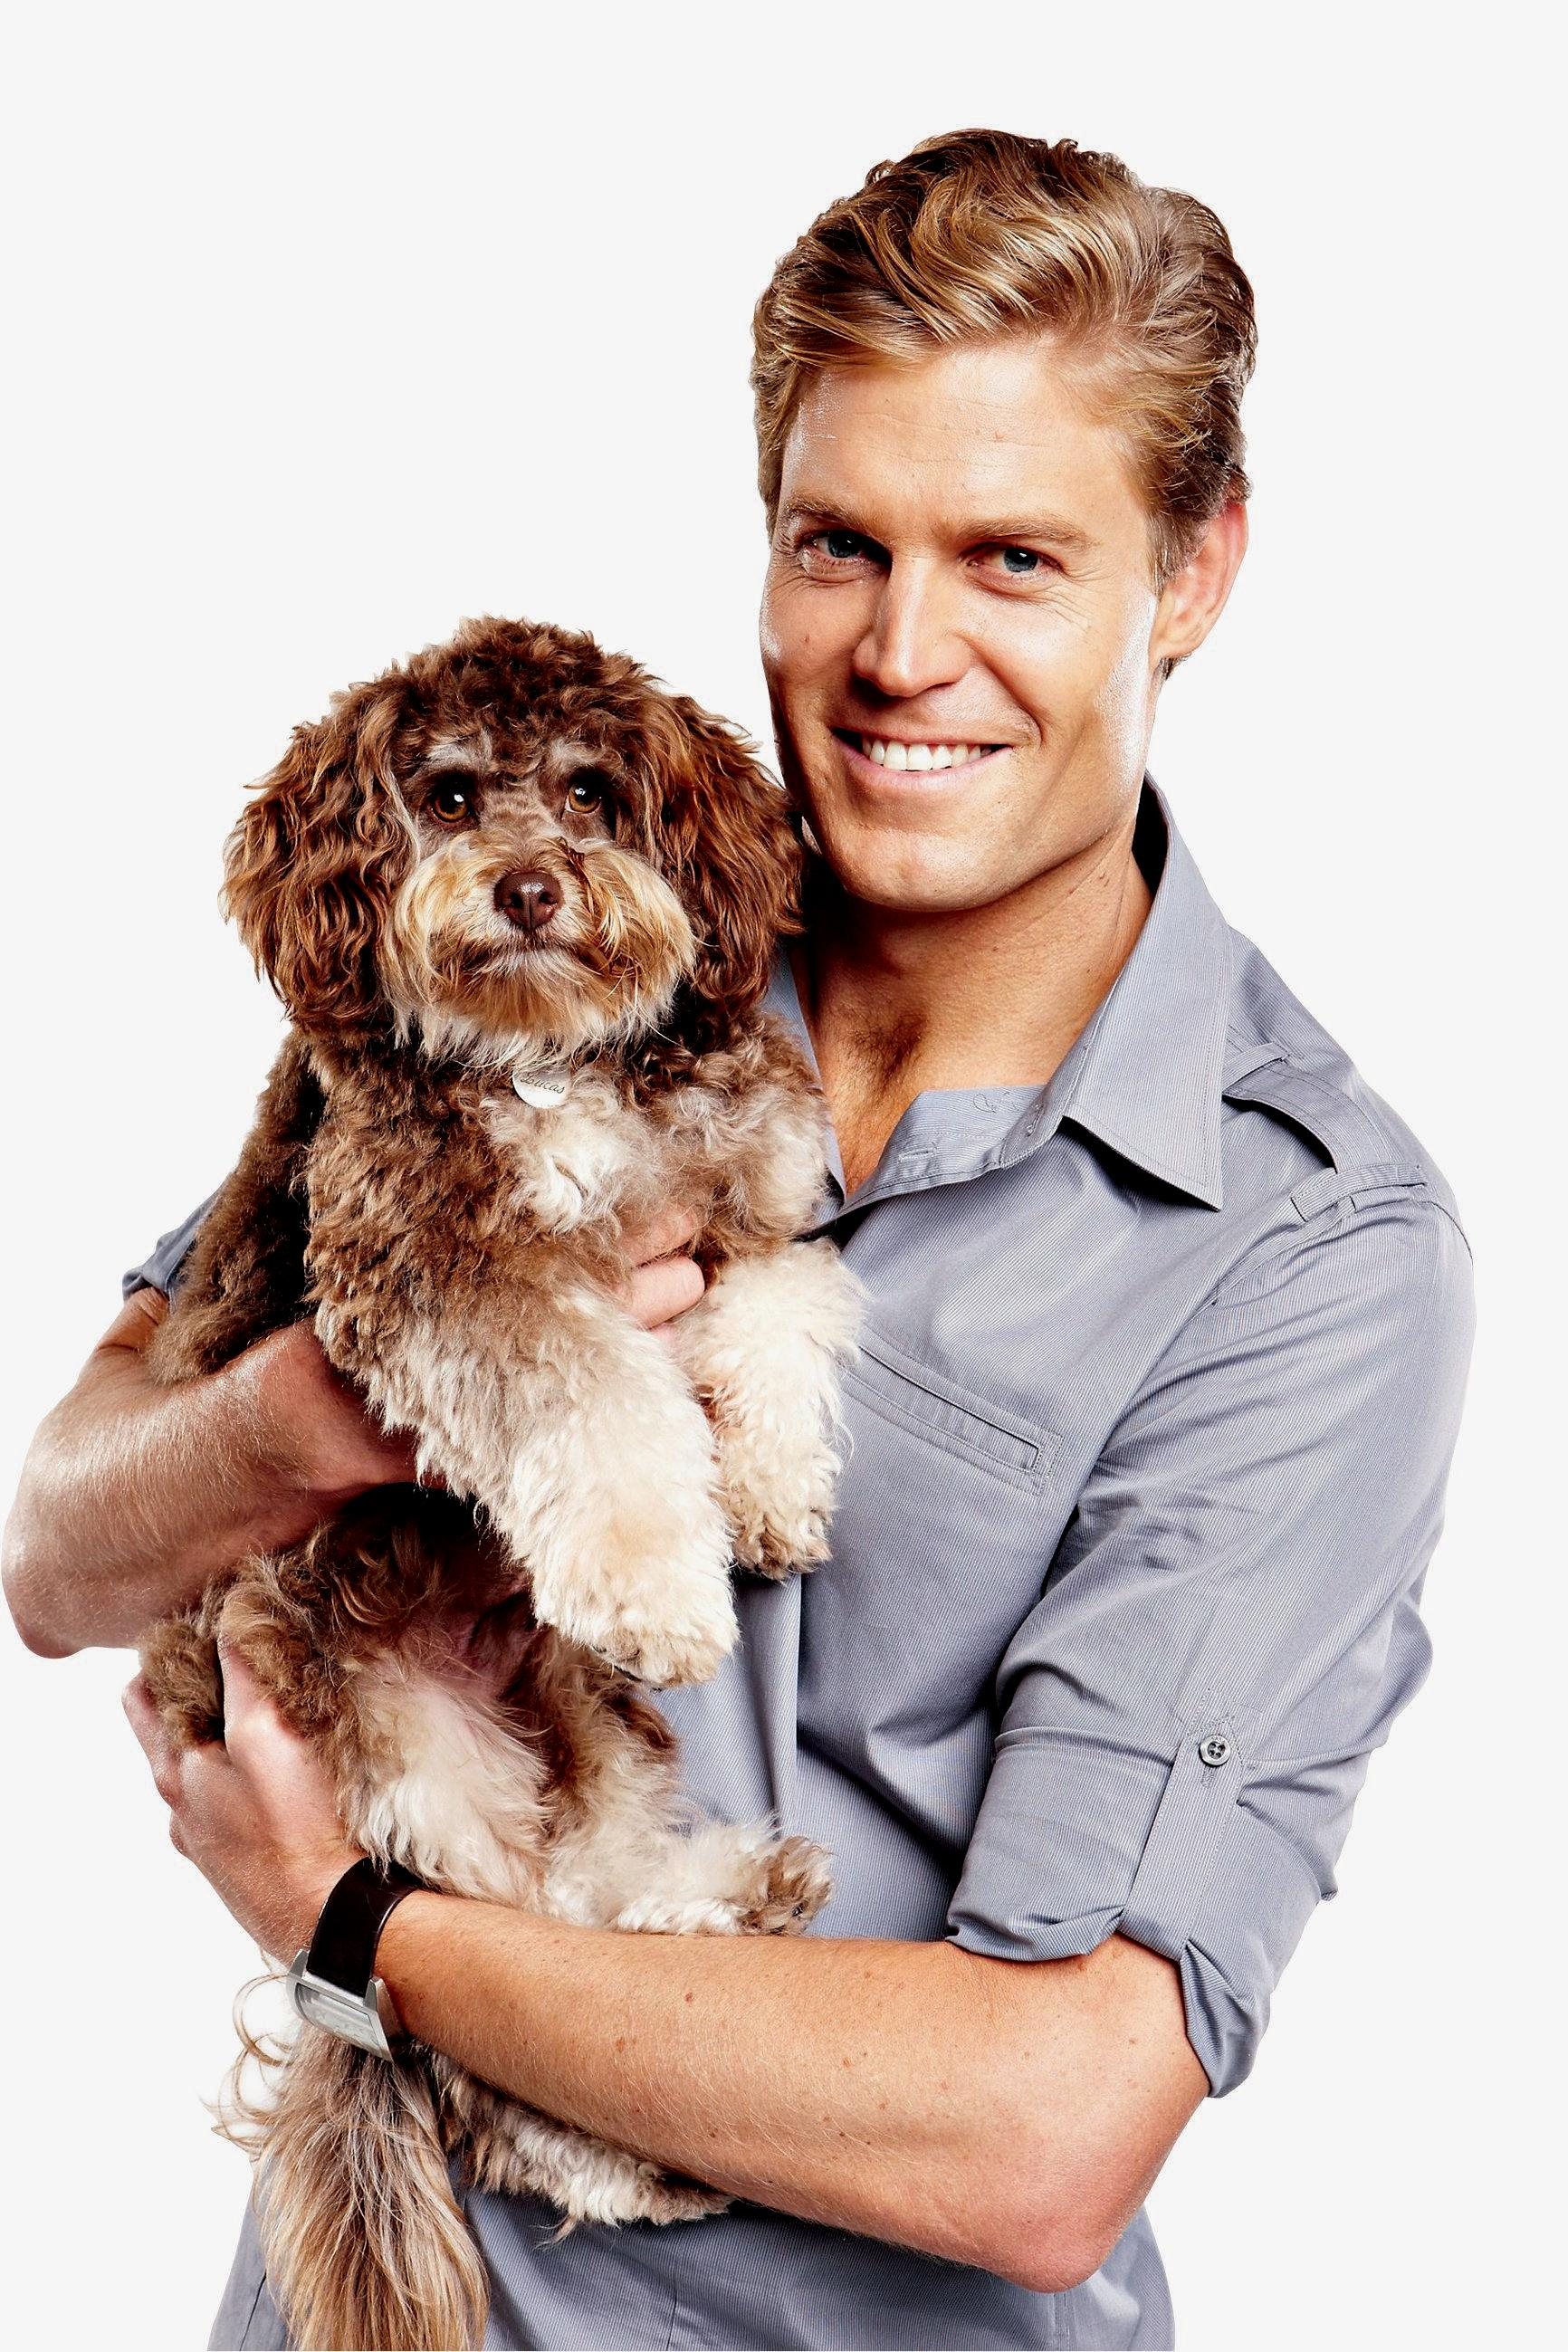 Dr Chris Brown stars in the TV series Bondi Vet. Supplied by Channel 10.